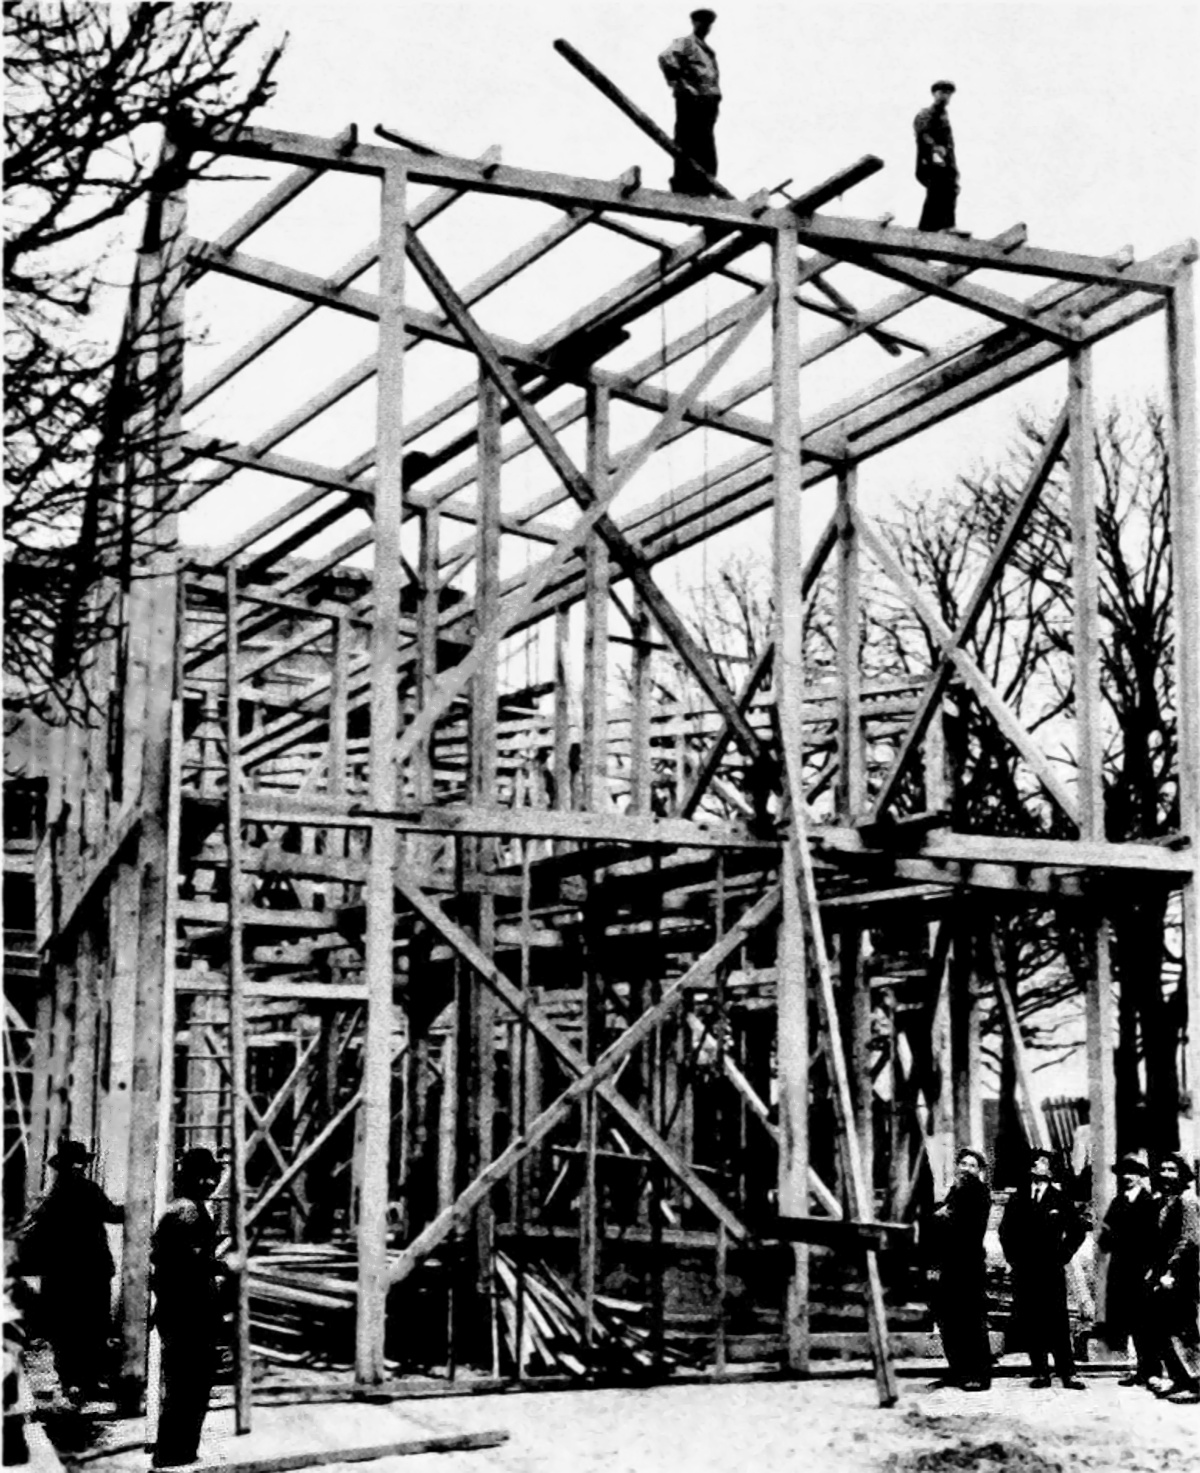 Mel'nikov overseeing construction of the 1925 Soviet Pavilion in Paris